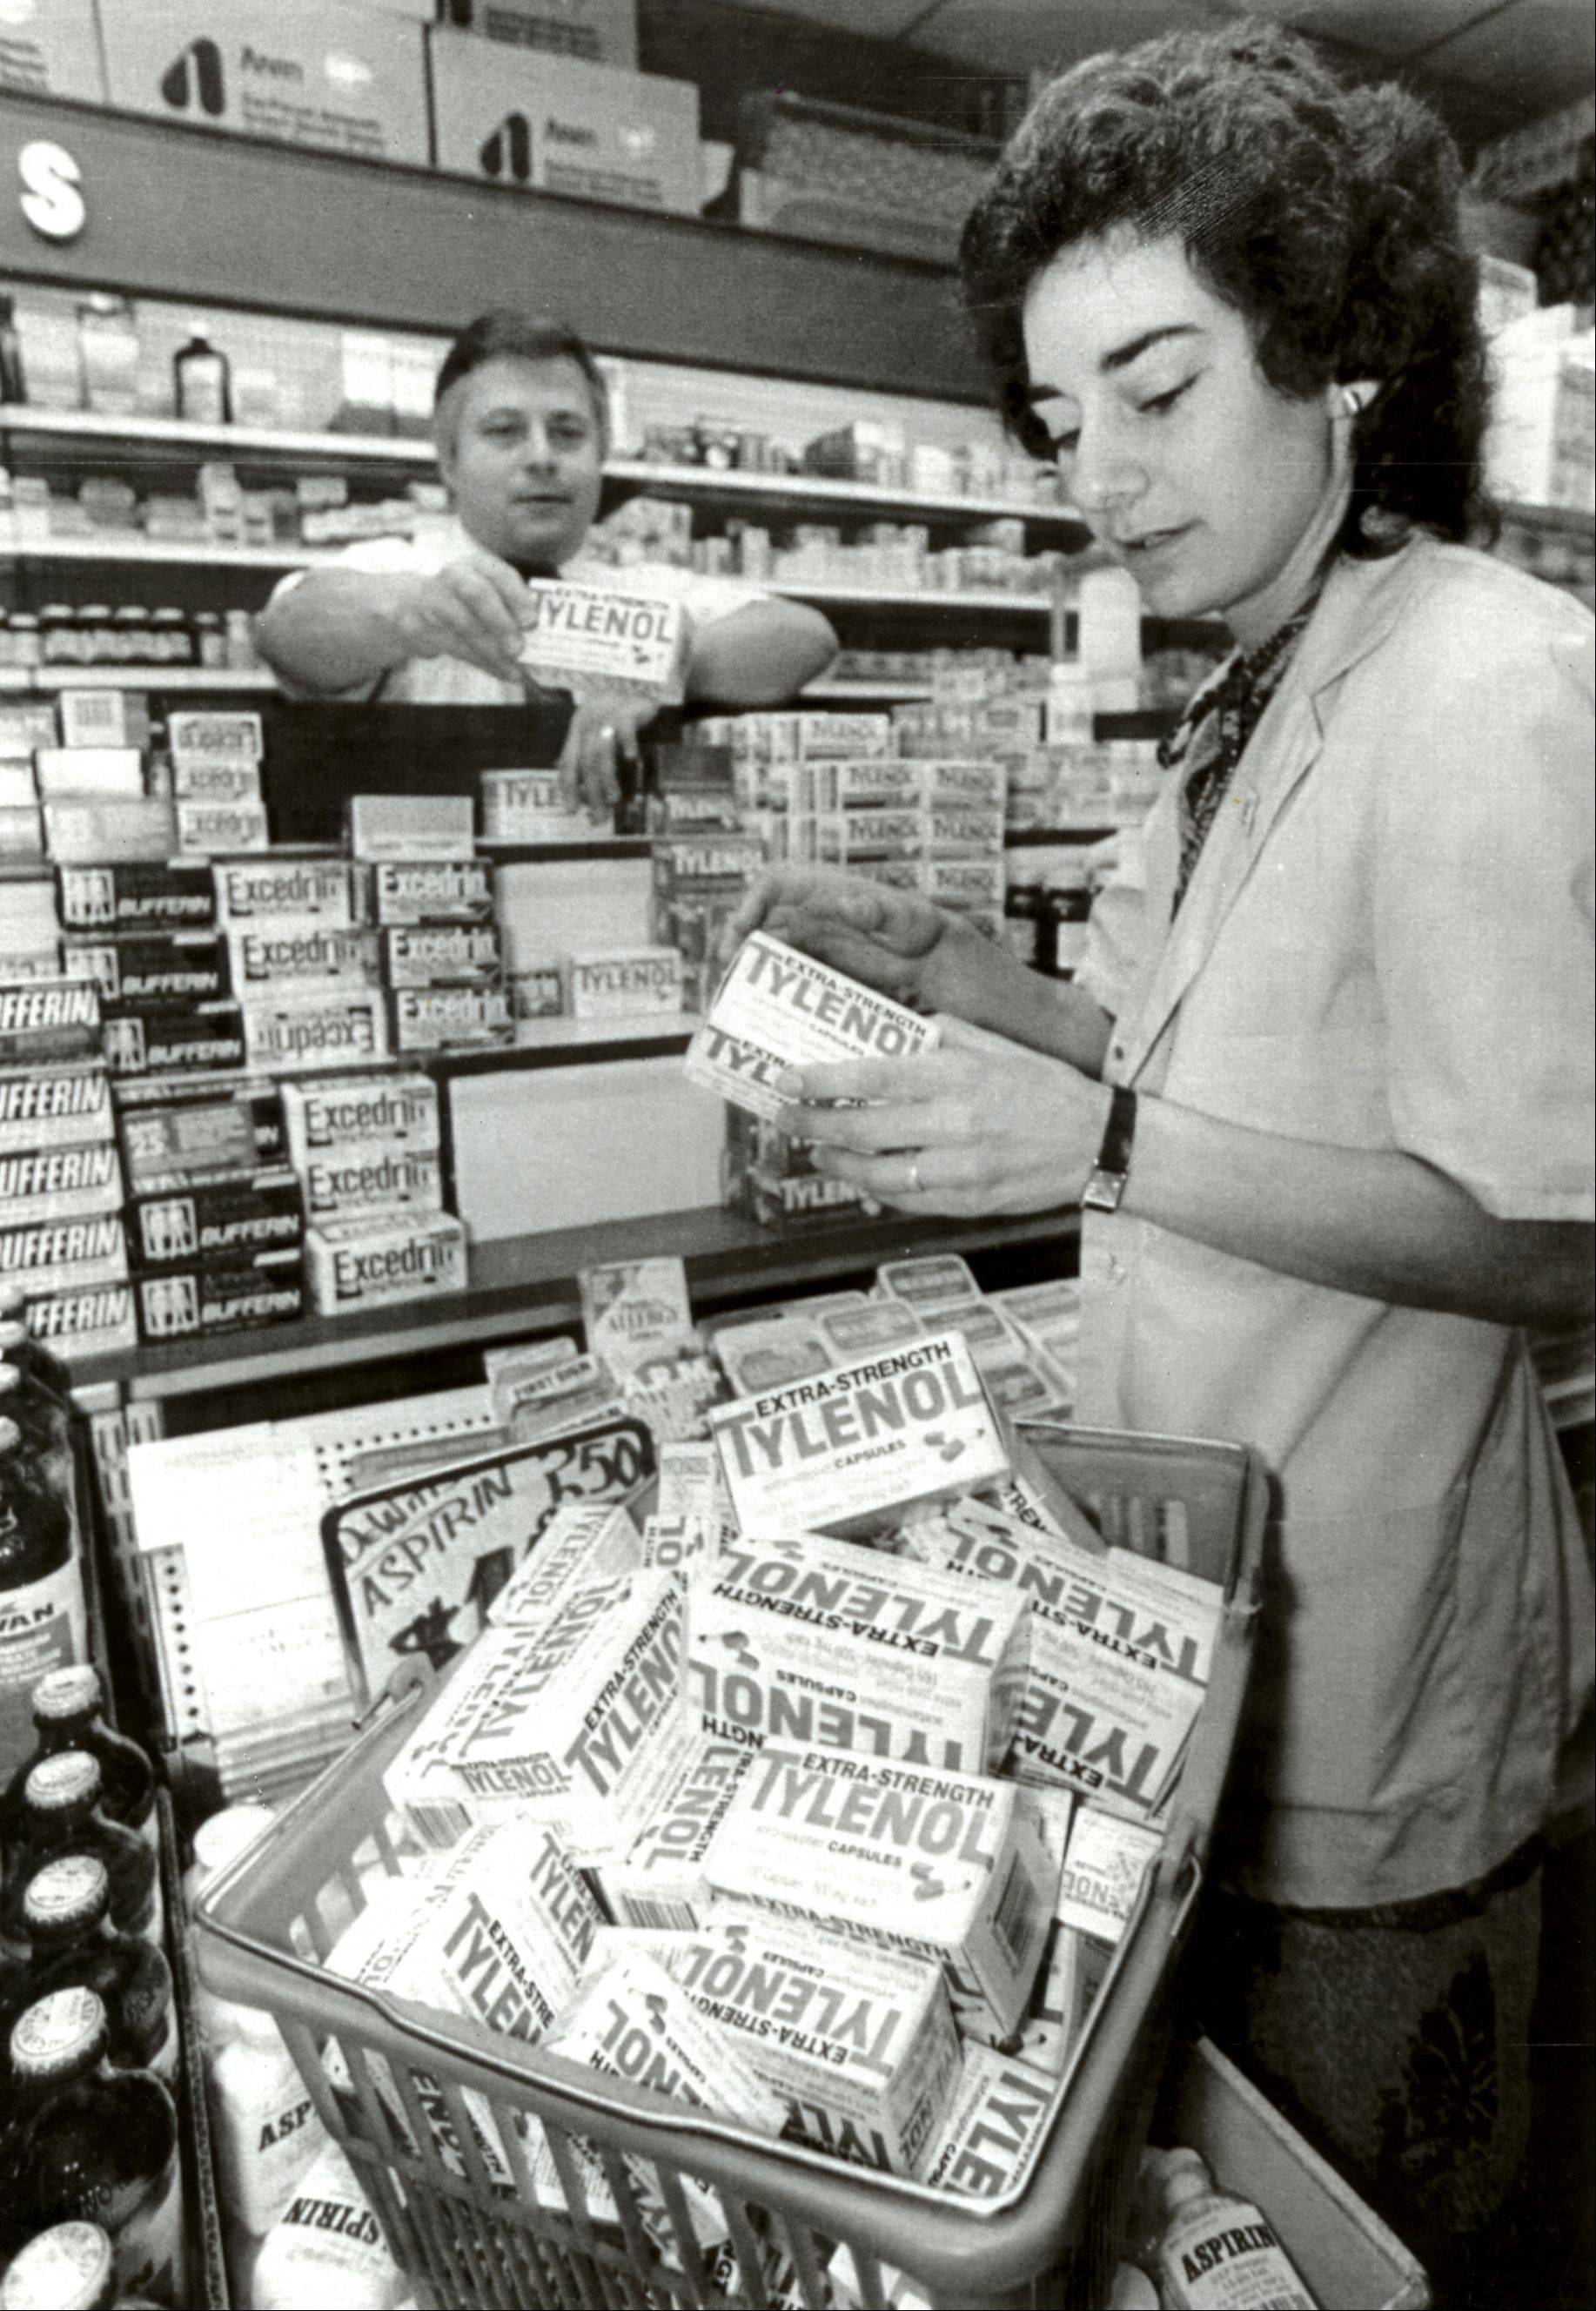 Pharmacist Myrne Spivack and Terry Lehman, manager of Paul's Cut Rate Drugs in Detroit, remove the store's complete stock of Extra-Strength Tylenol capsules from their shelves after the 1982 murders in the Chicago suburbs.